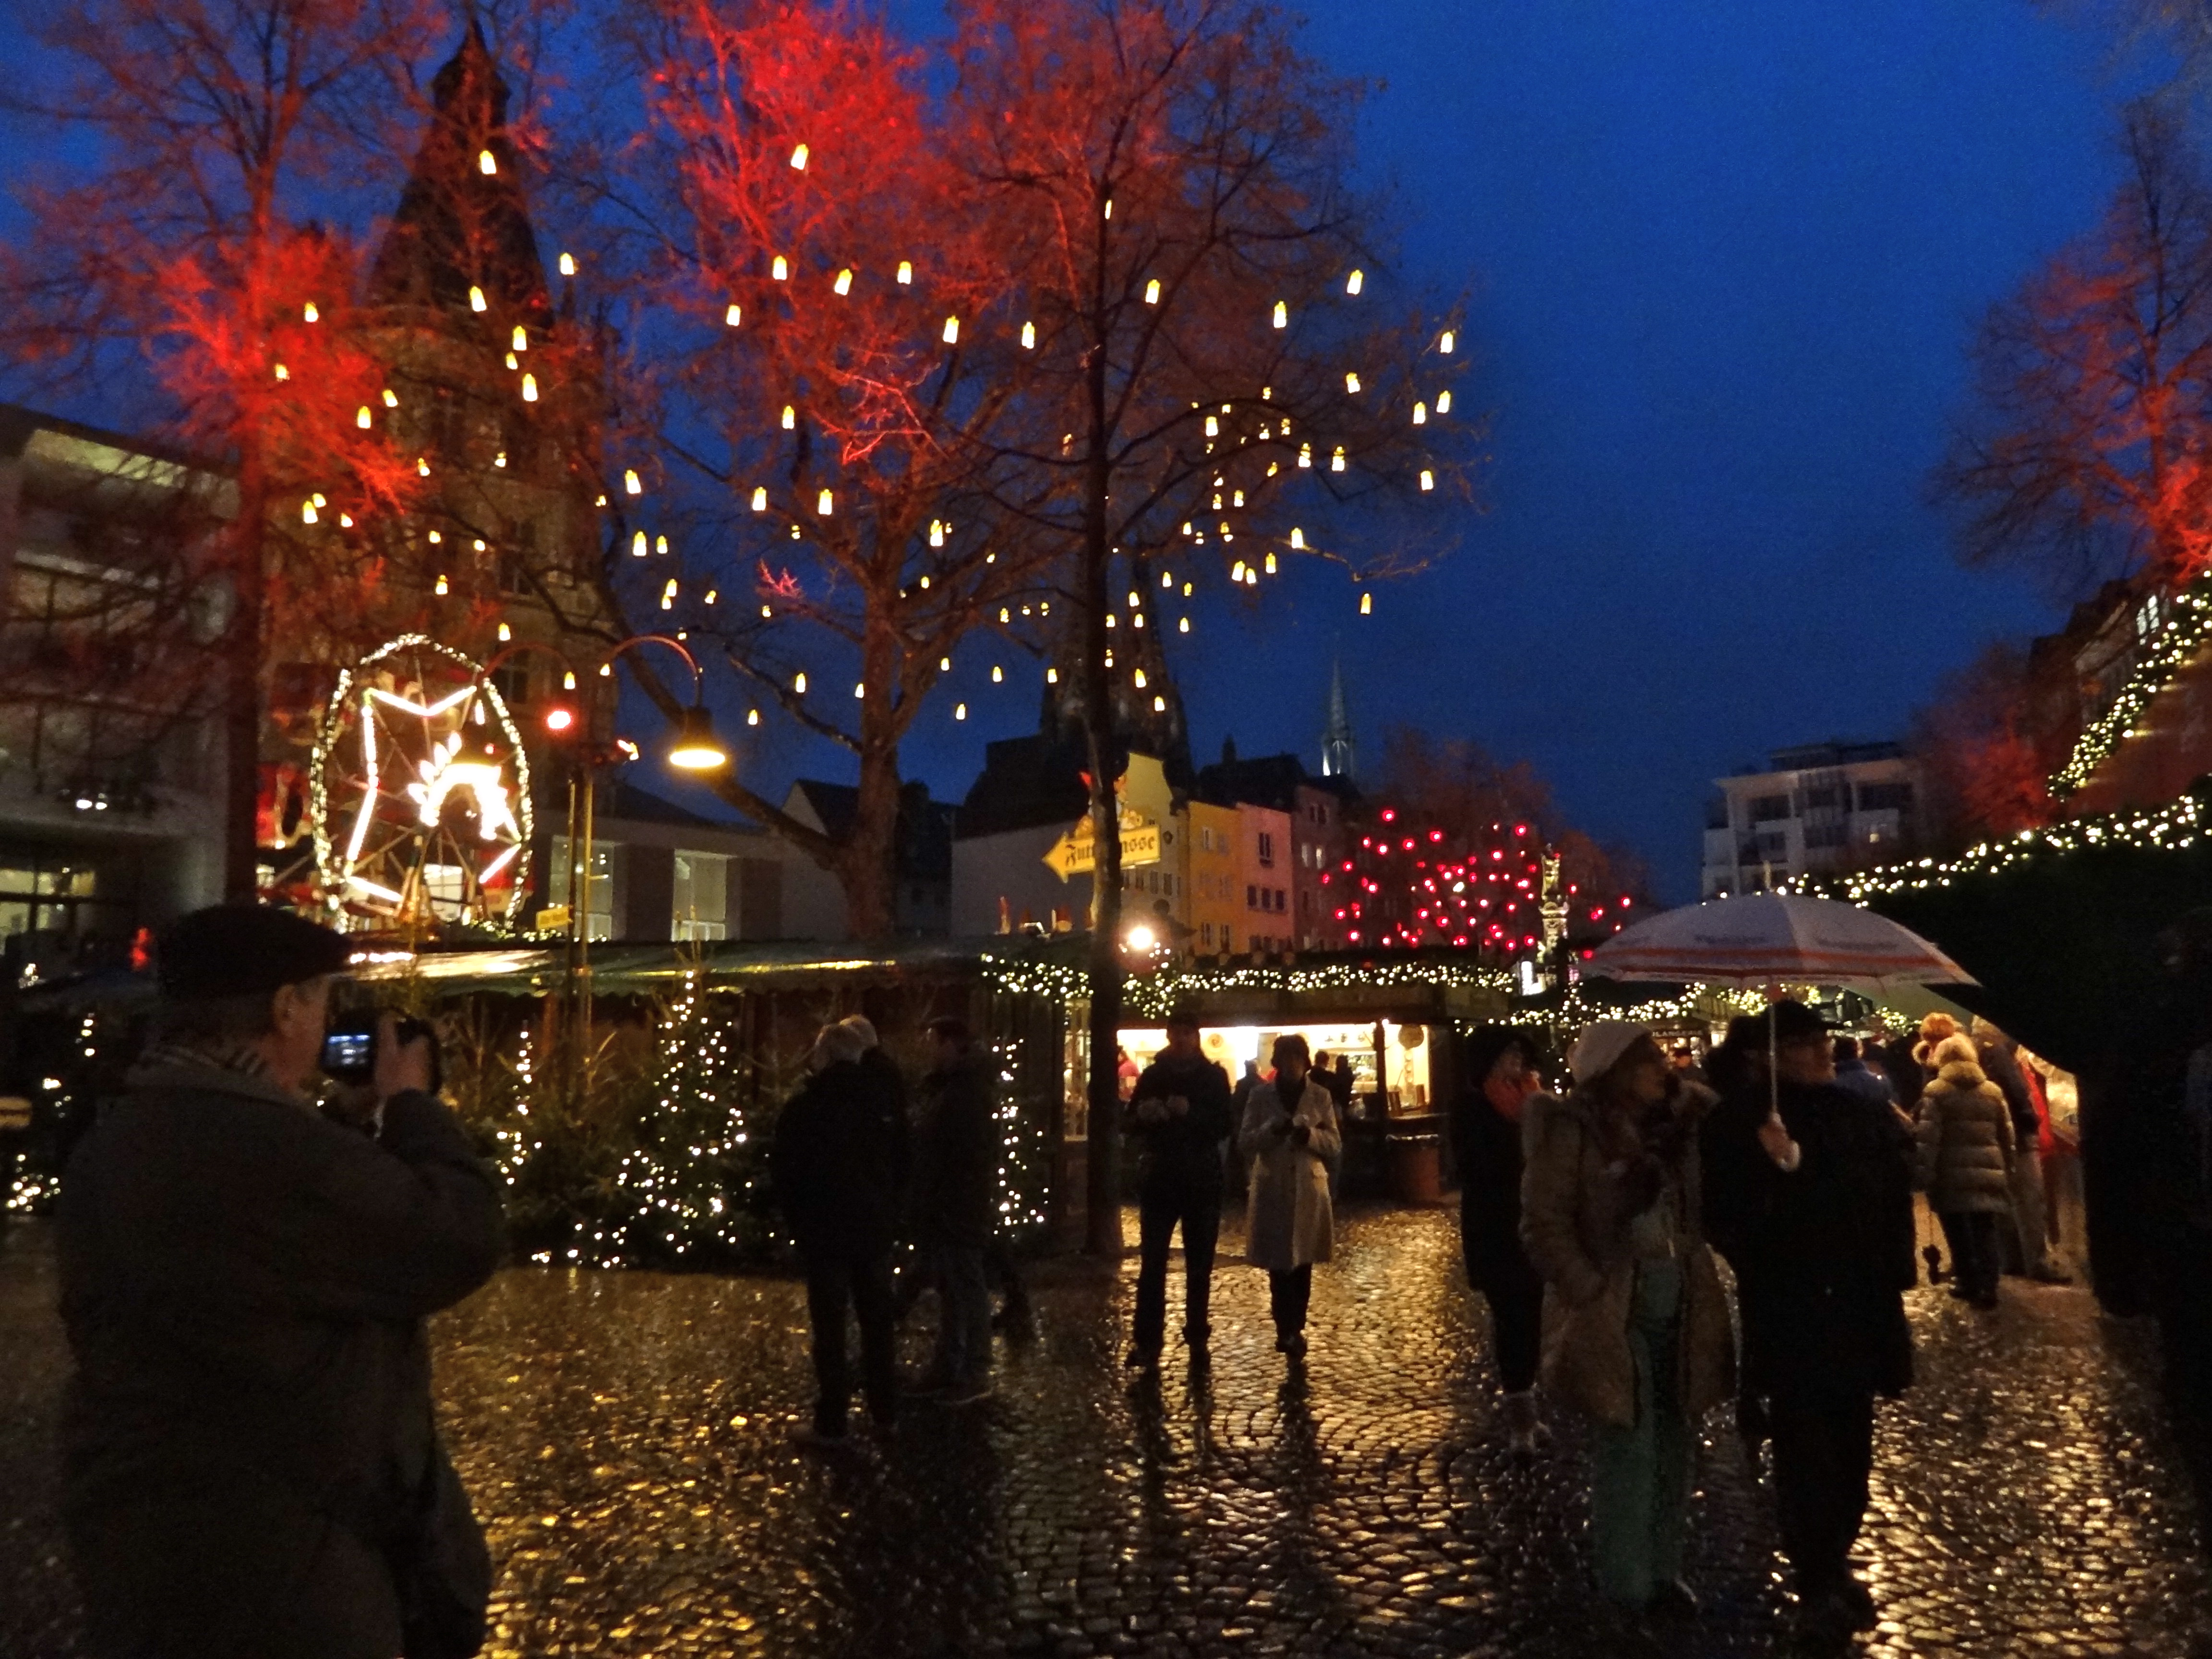 In Photos: German Christmas Markets. | The Shooting Star